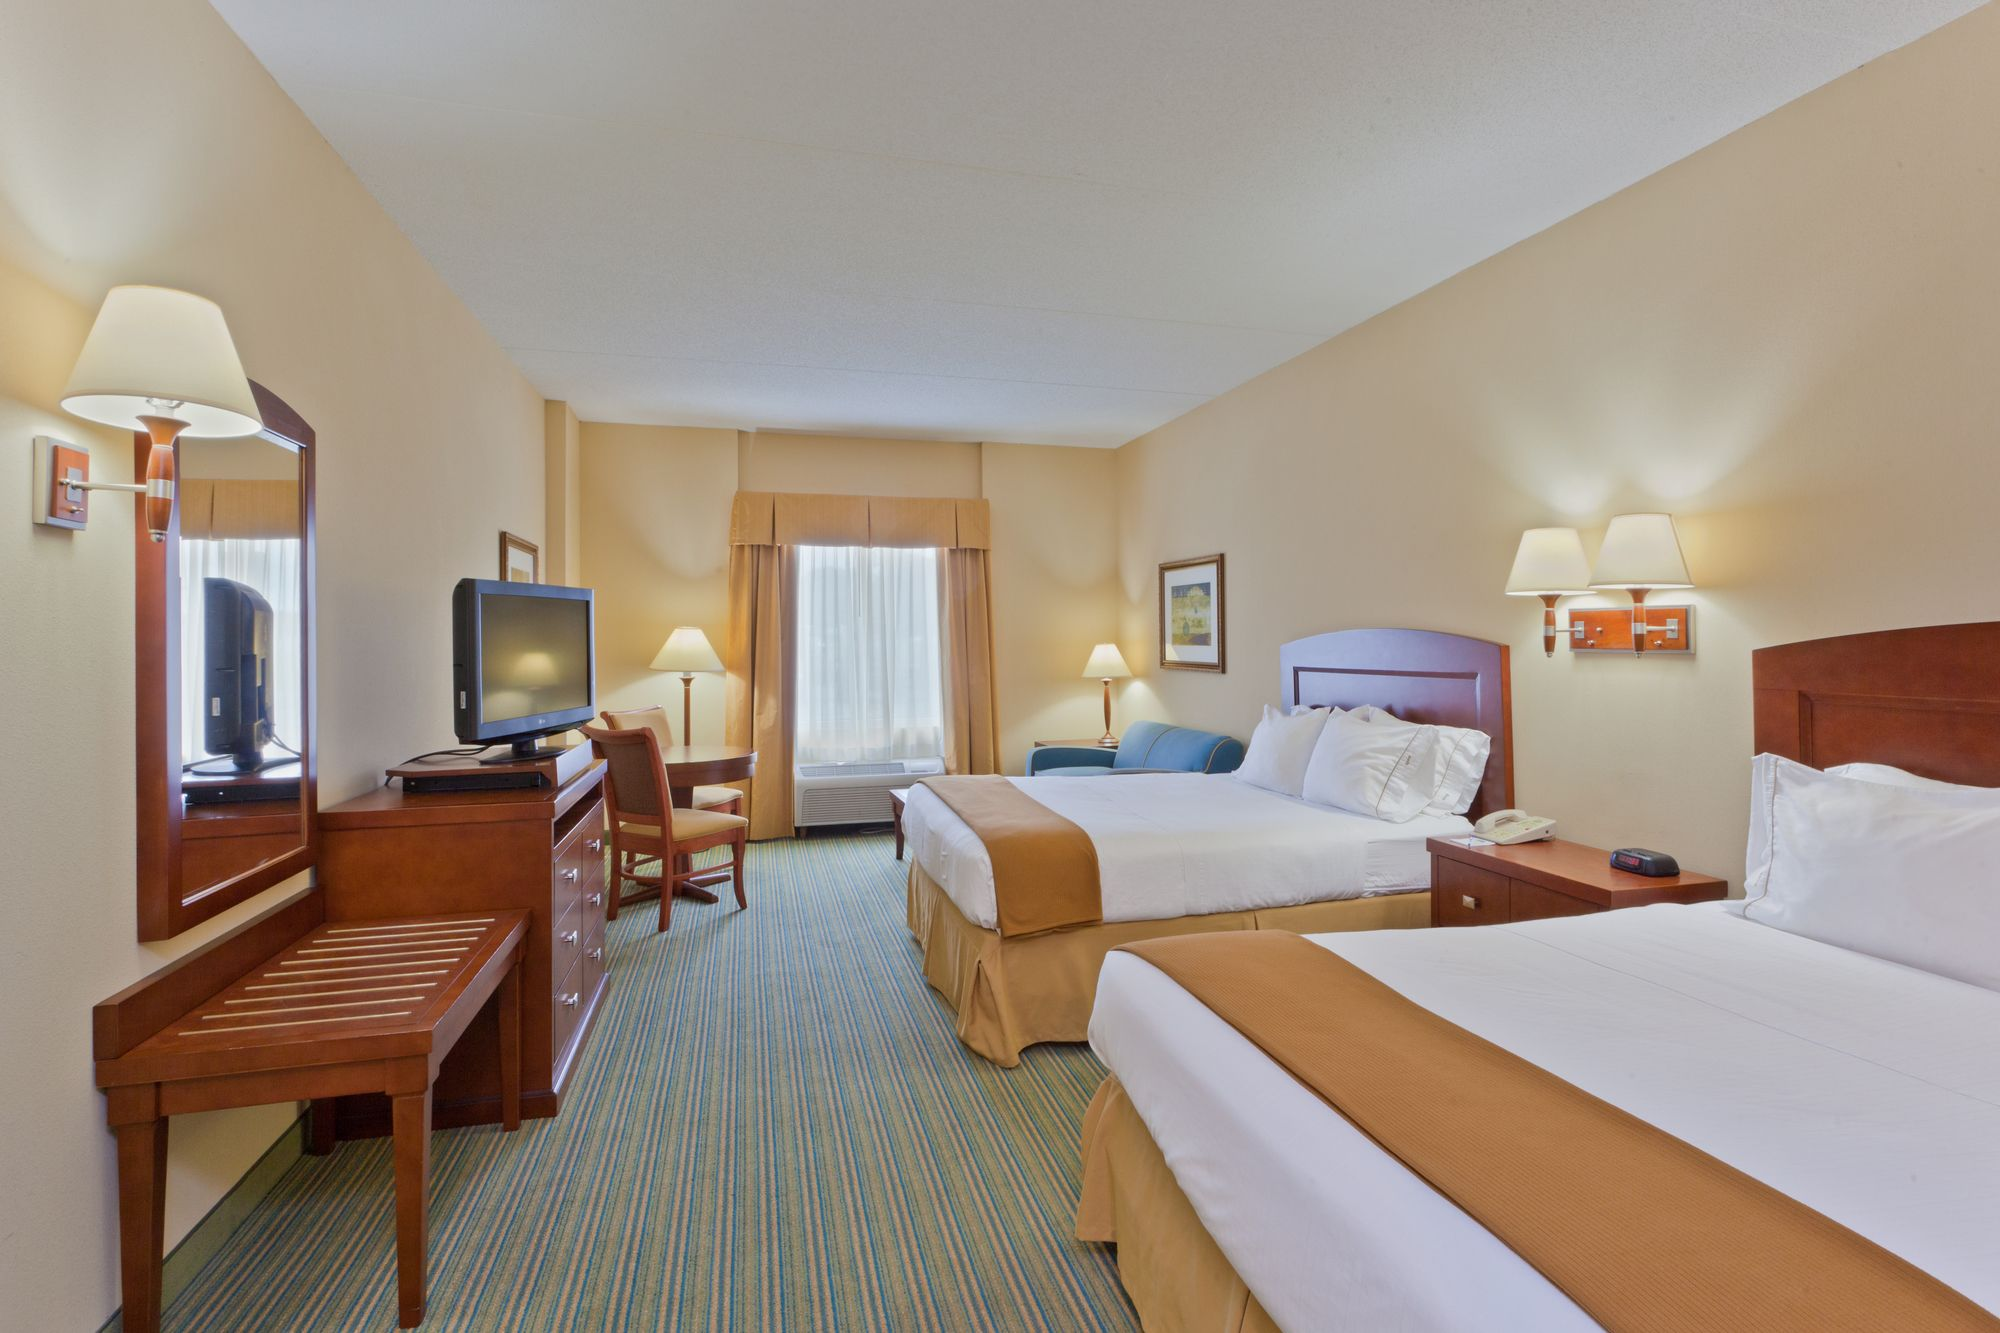 Holiday Inn Express - Rehoboth Beach